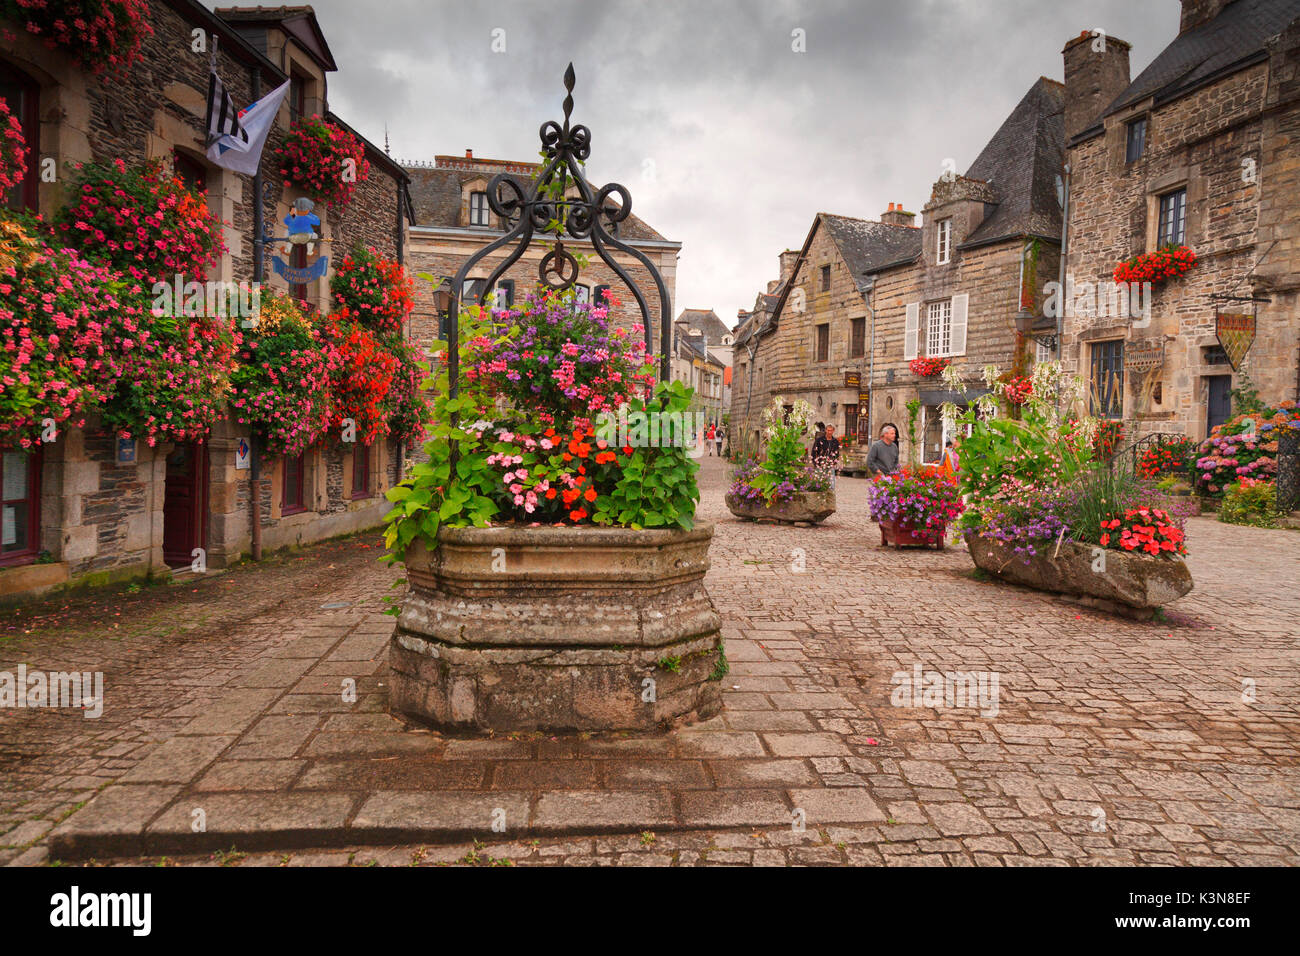 Rochefort-en-terre, Brittany, Morbihan department, France. It is one of the villages included in the list of 'Villes et villages fleuris.'  A visit during the summer season you can enjoy the beautiful blooms of geraniums that adorn this quiet medieval village. - Stock Image